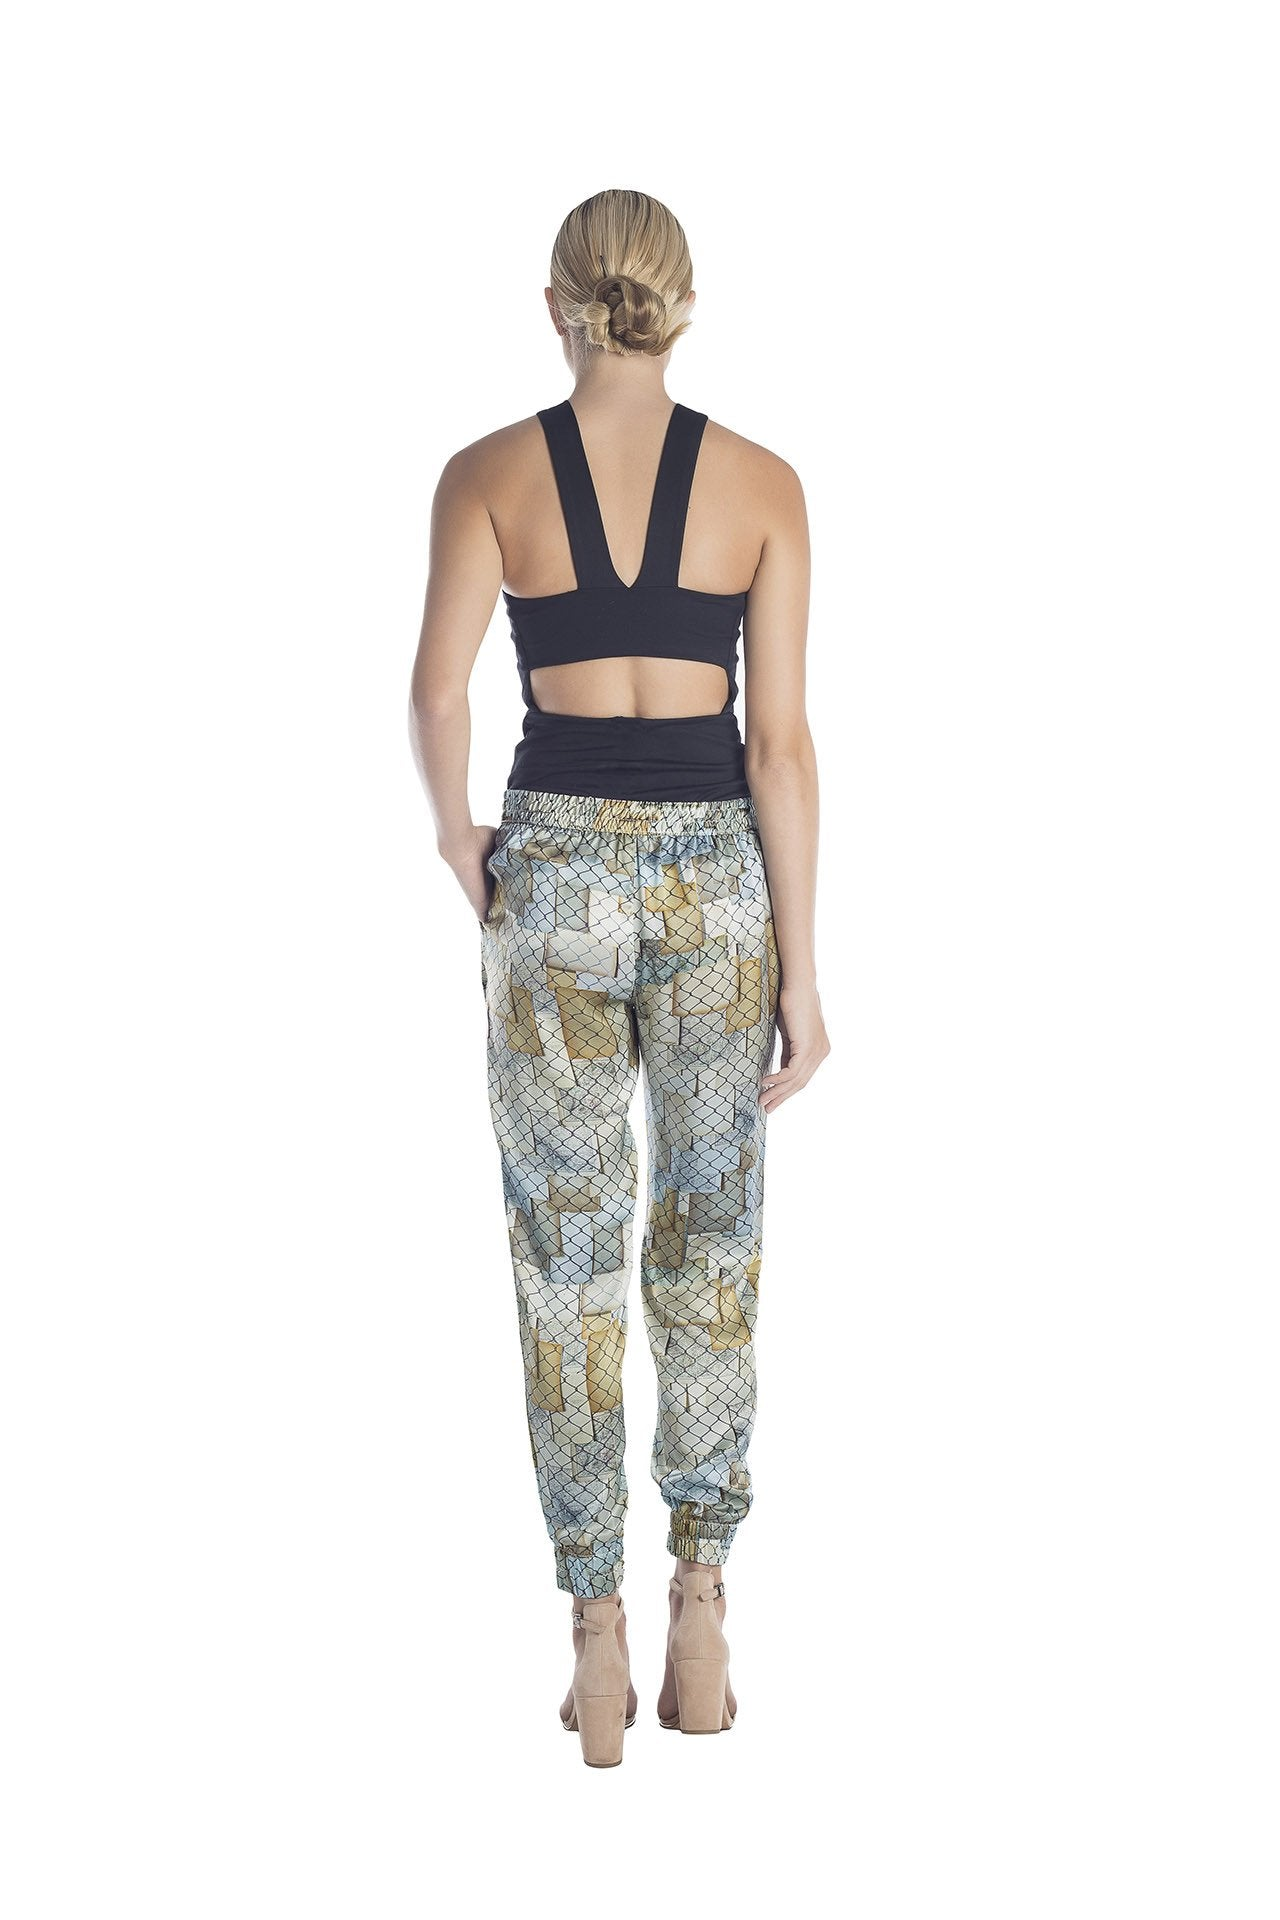 Back view of silk jogger pants with golden and silver hues designed by artist Mauro Giaconi